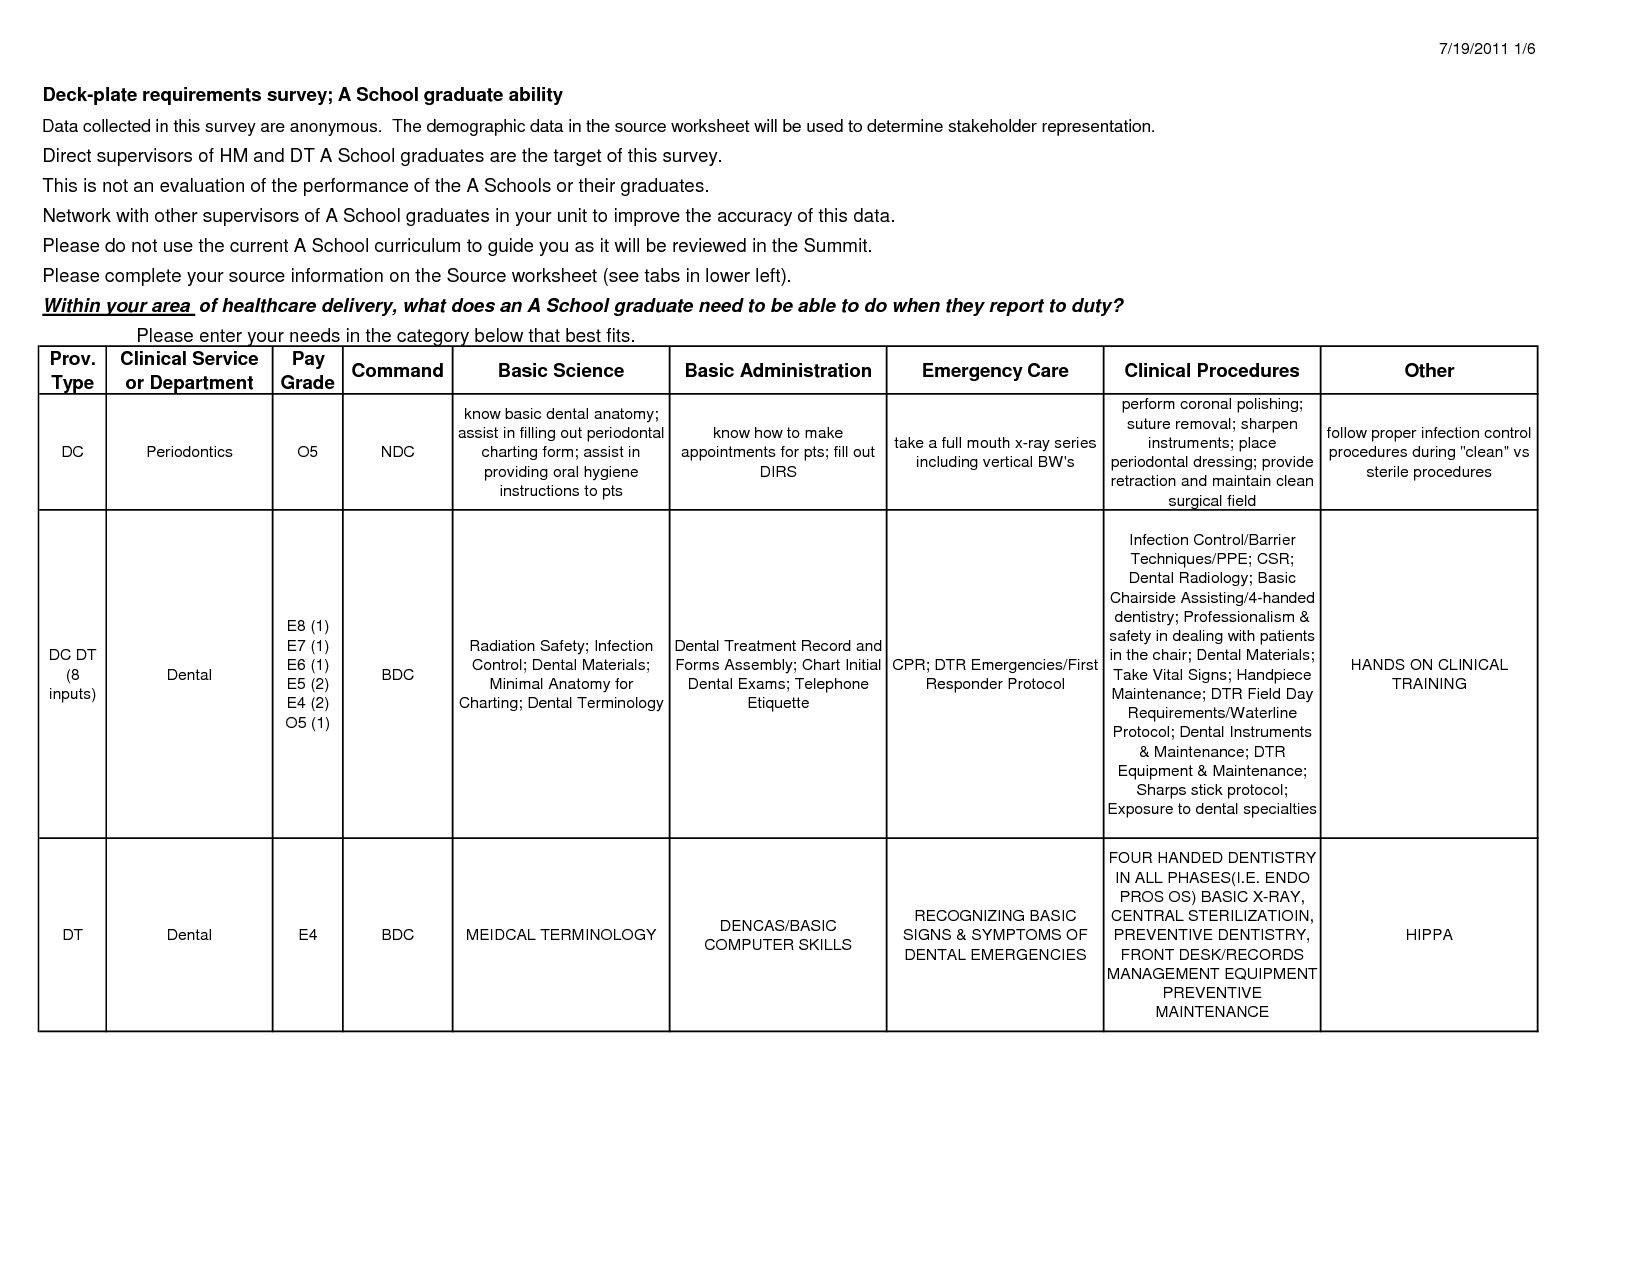 Sample Risk Management Worksheet